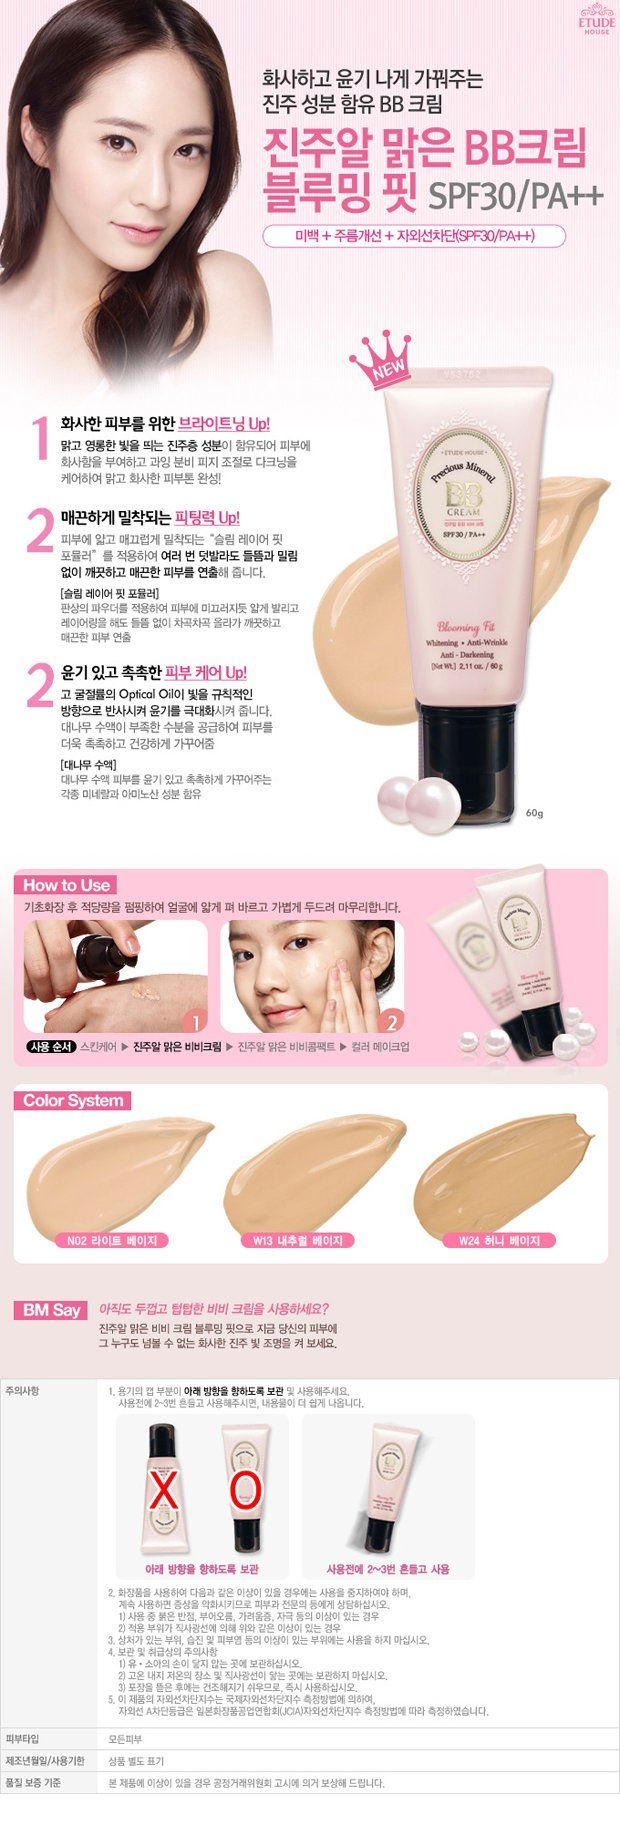 SALE!! KOREAN COSMETICS, Etude house BB Cream, WORLD WIDE SHIPPING- ALIBAYZON.COM  http://alibayzon.com/home-beauty1/brandskoreancosmetics11/etude-house